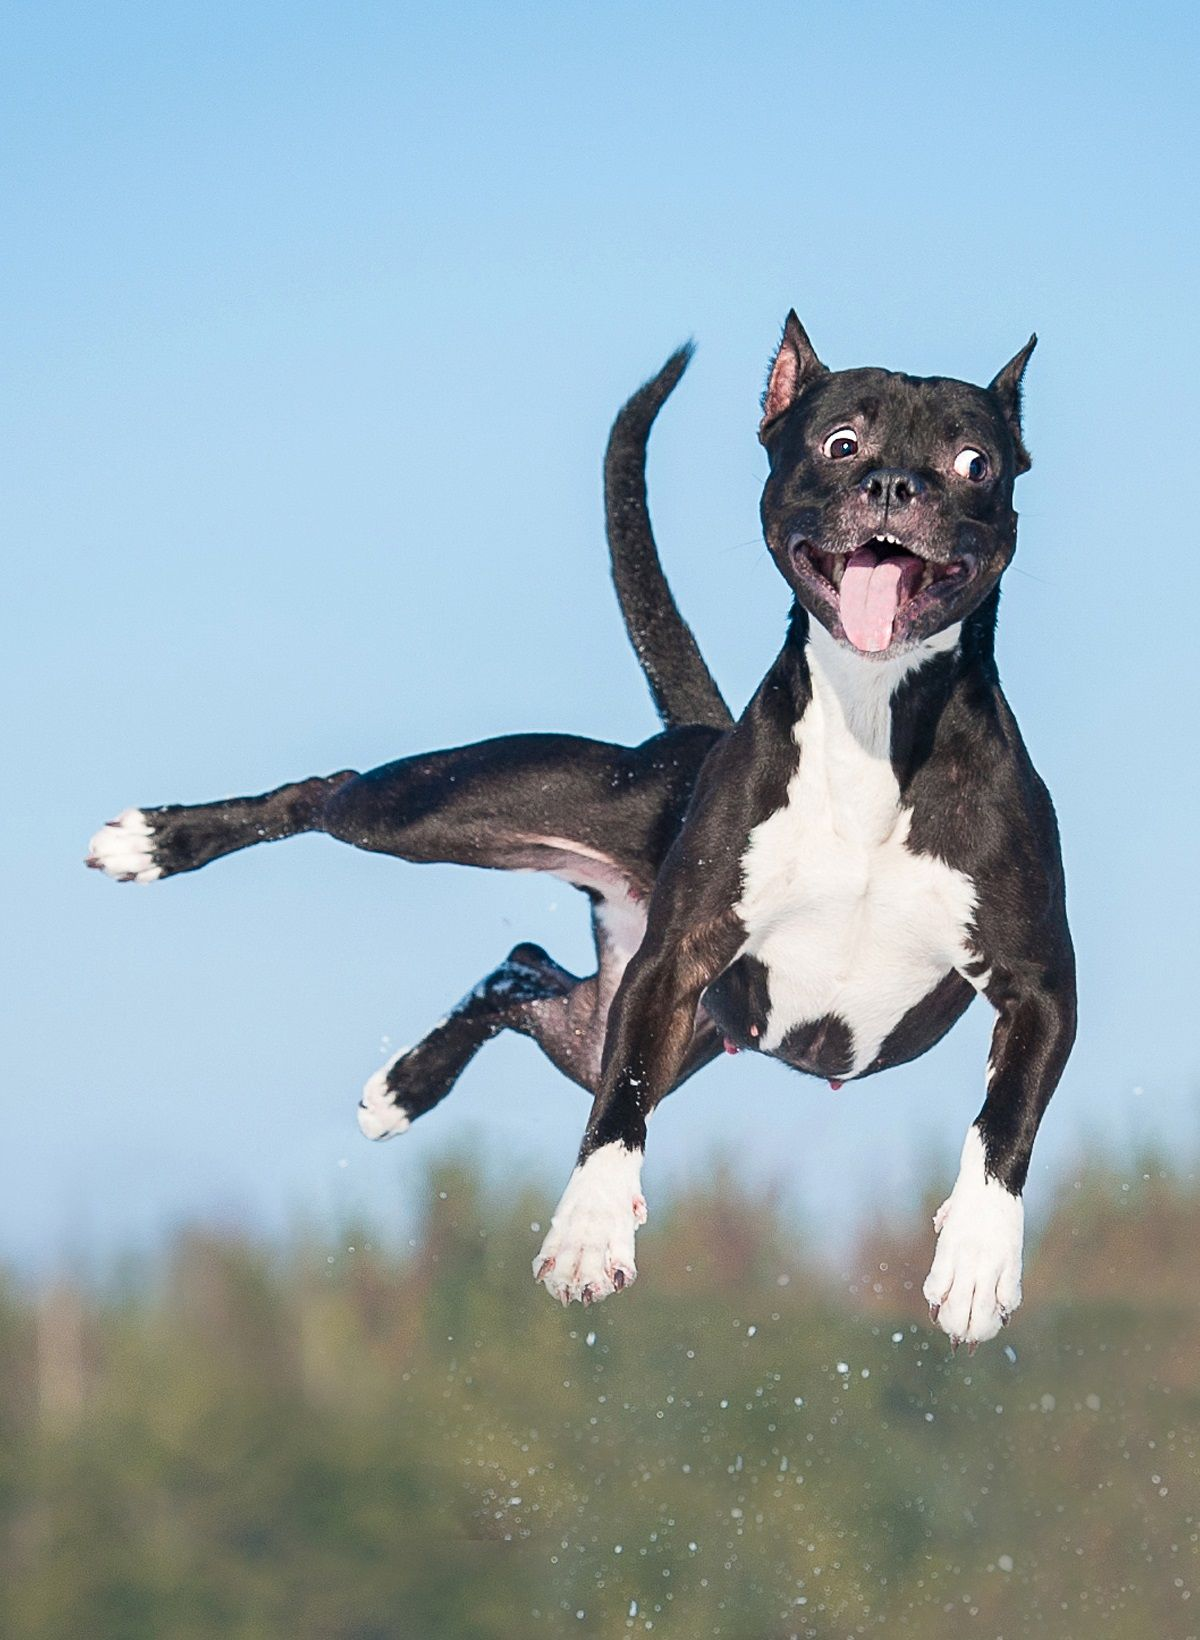 Funny American Staffordshire Terrier Dog With Crazy Eyes Flying In The Air Funny Dogs Funny Dog Videos Dogs